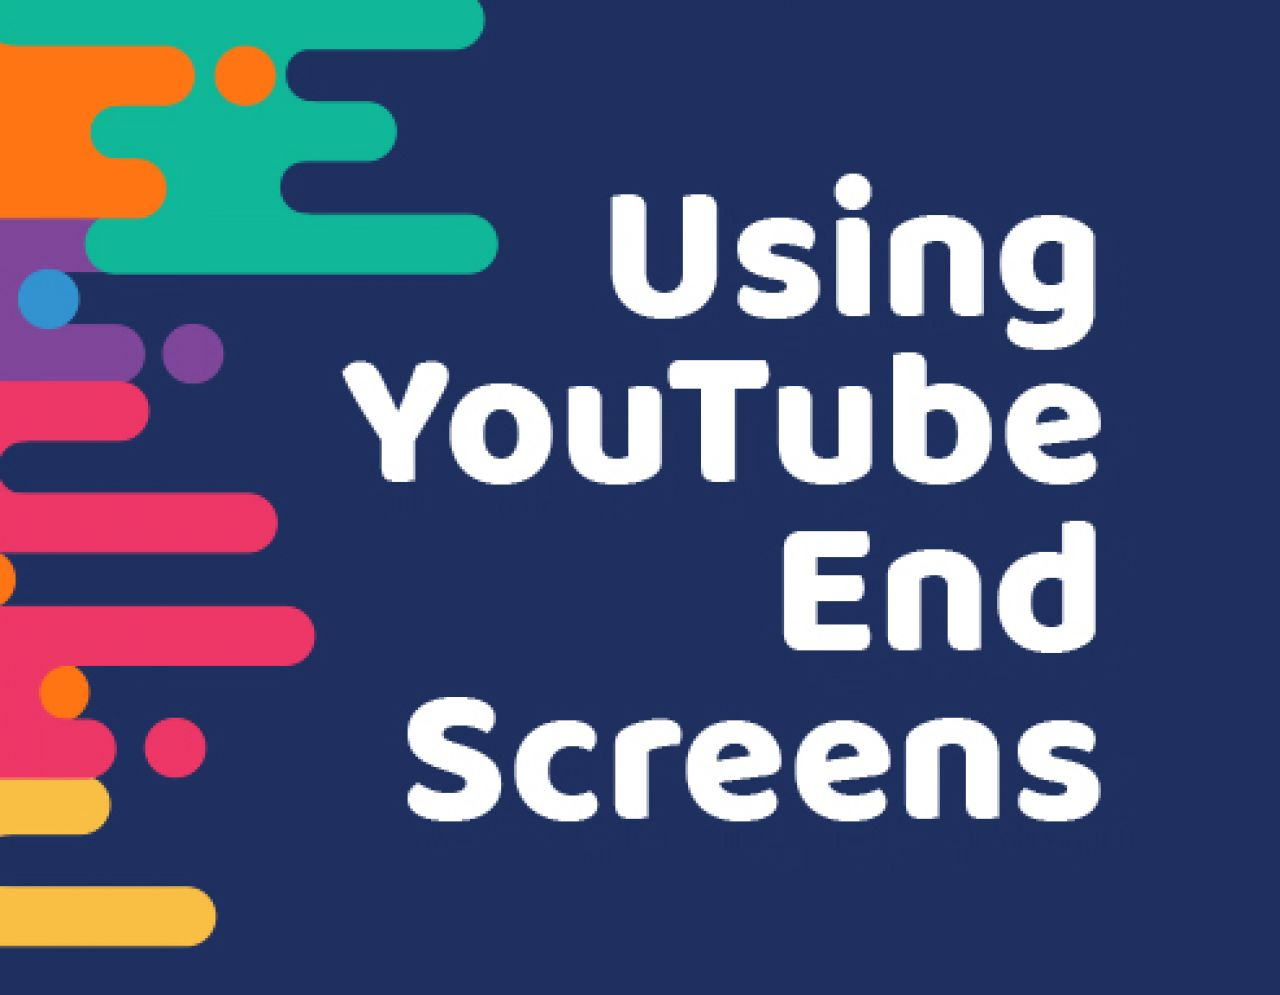 using youtube end screens